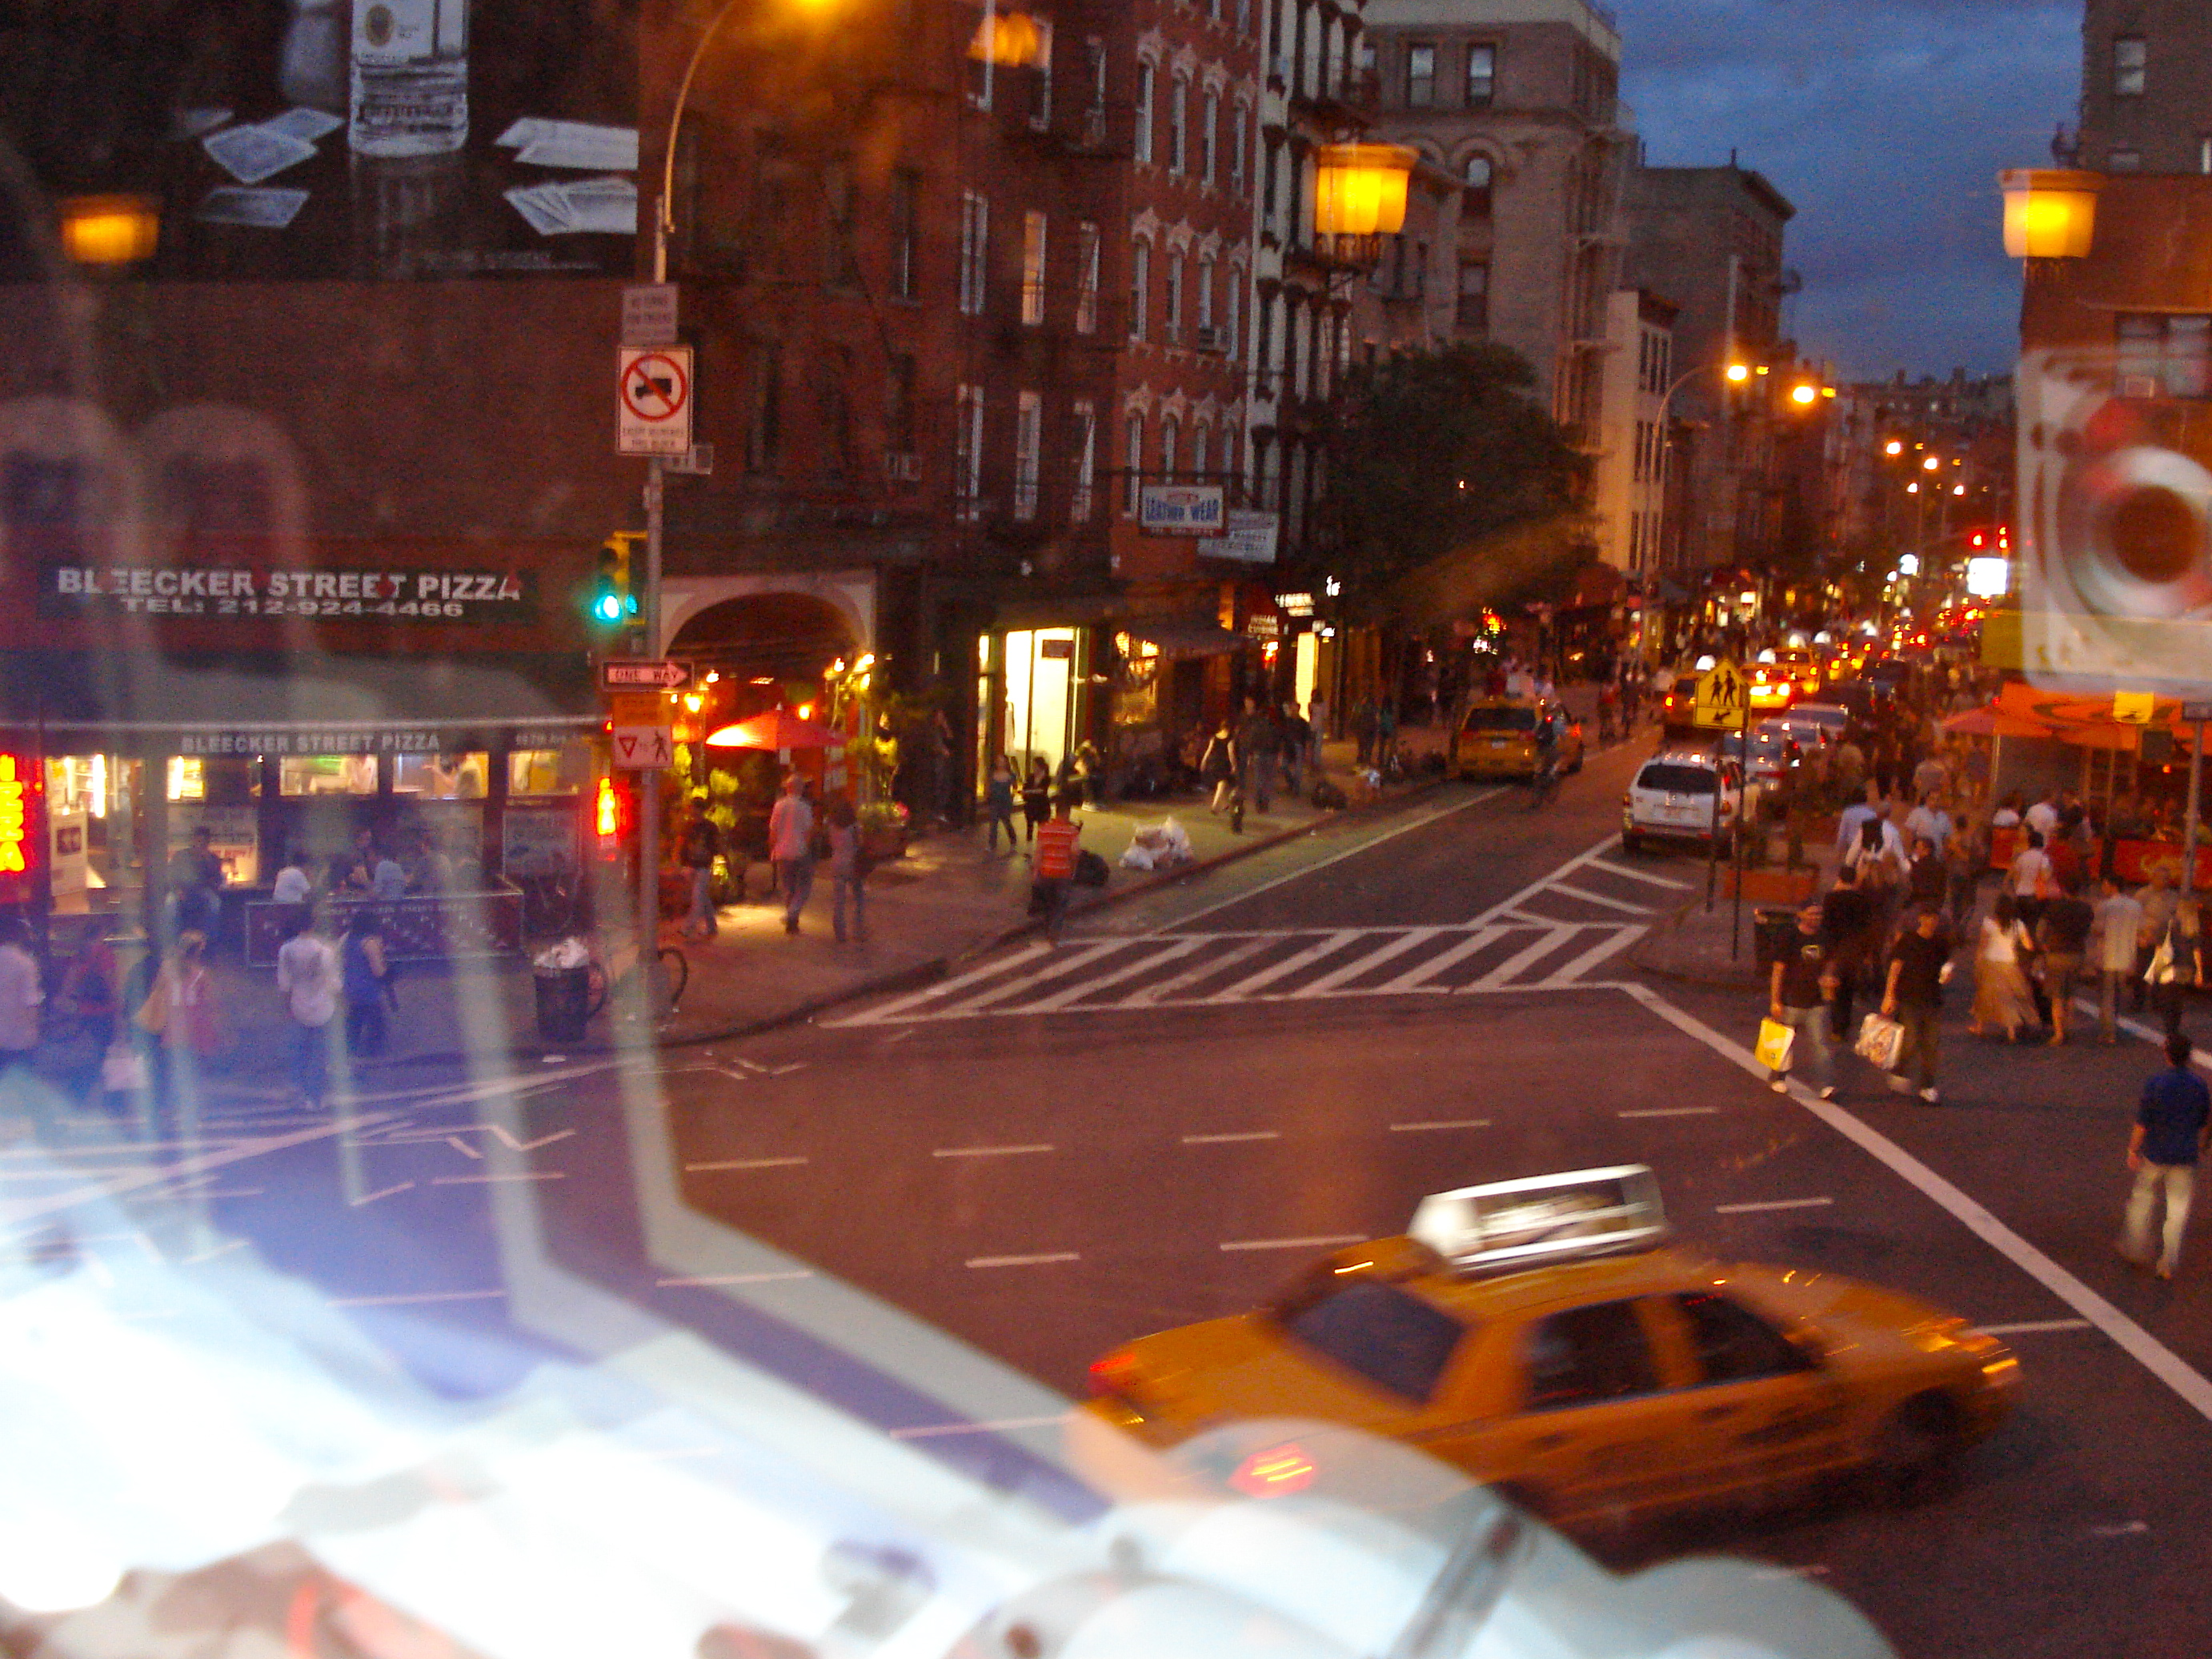 A view of the New York night life, from Bleeker Height's Tavern.